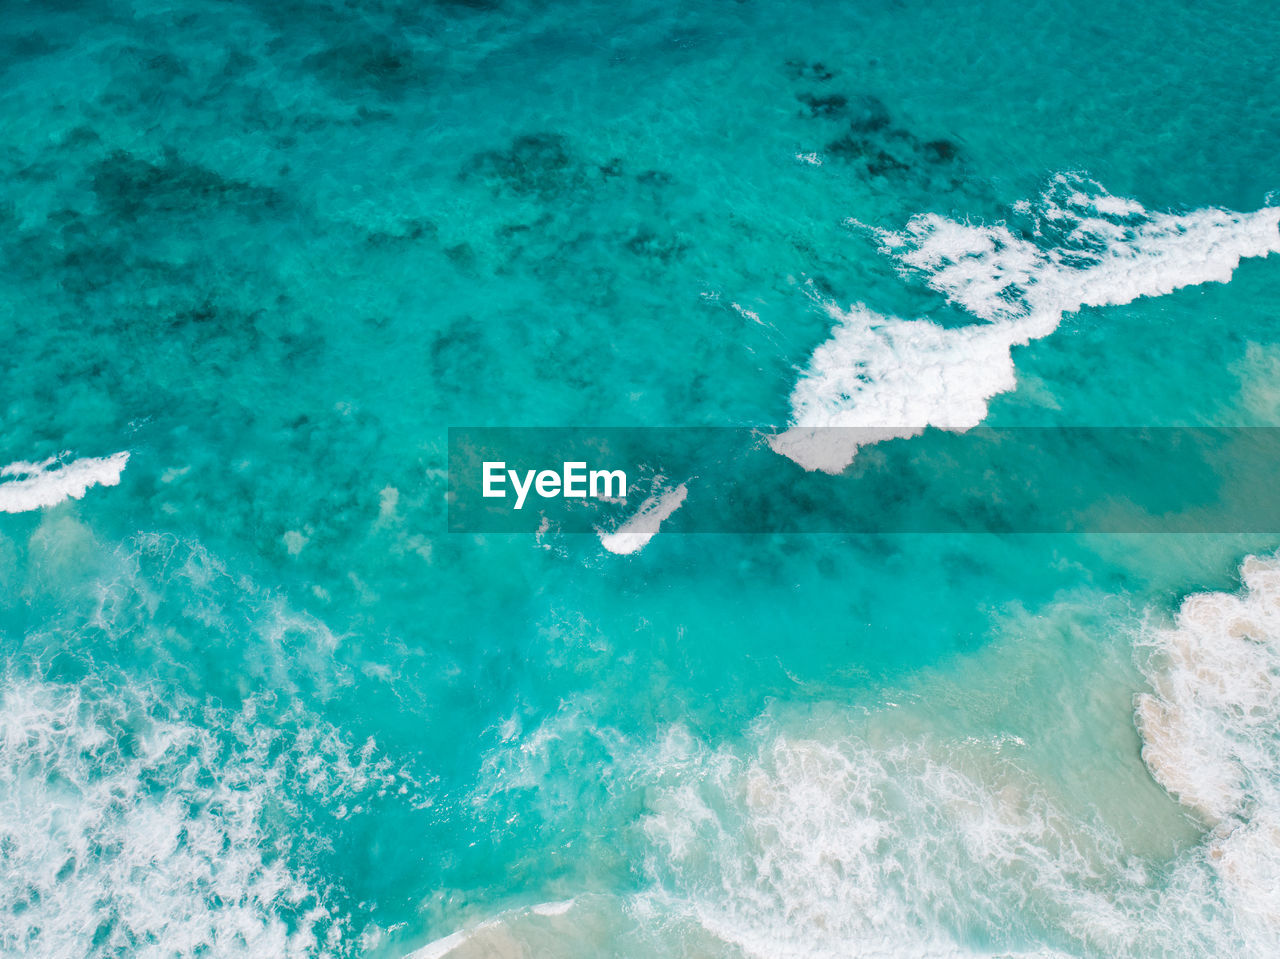 water, sea, nature, no people, turquoise colored, motion, blue, day, aquatic sport, sport, beauty in nature, wave, outdoors, backgrounds, underwater, full frame, scenics - nature, high angle view, power in nature